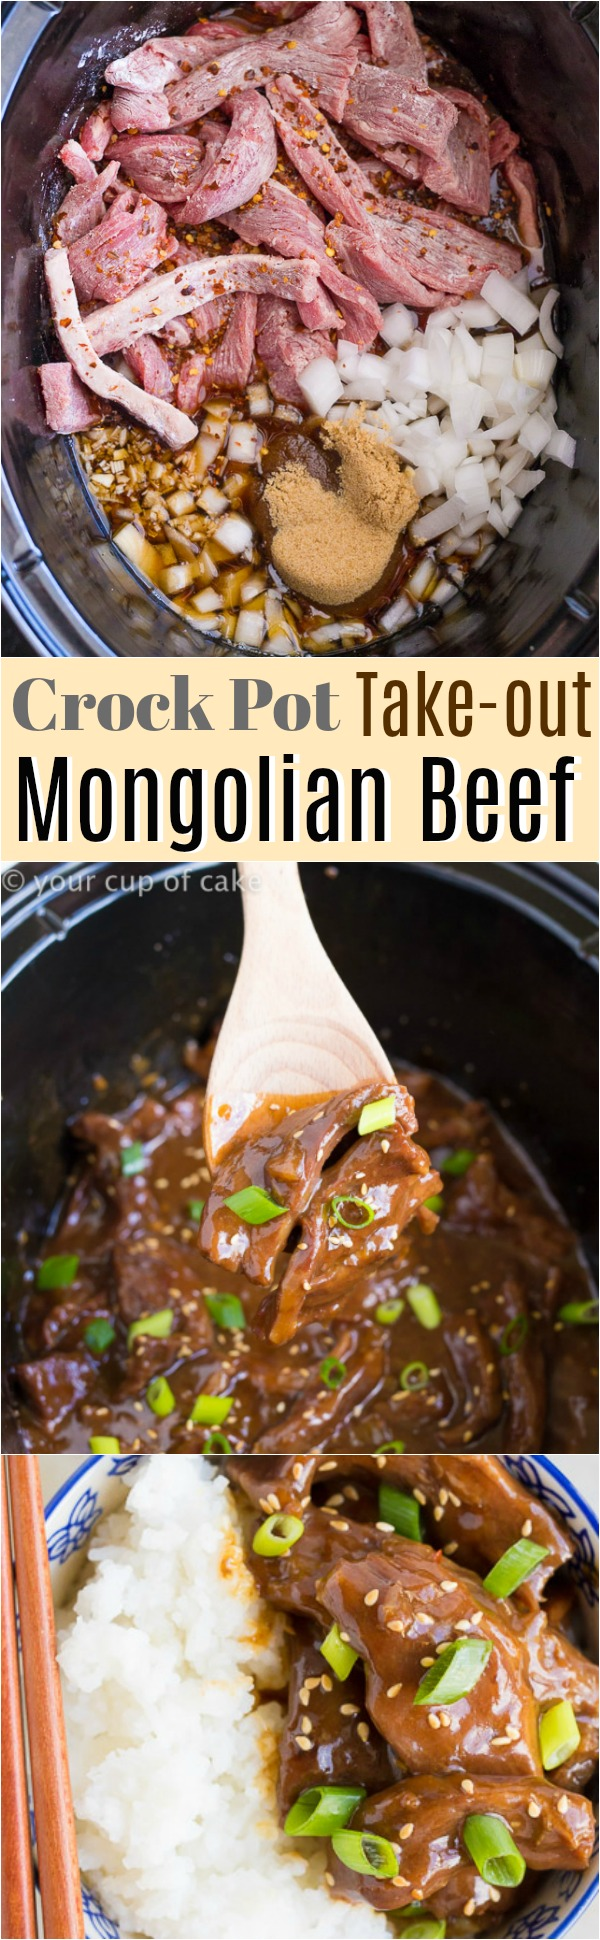 Crockpot Take out Mongolian Beef